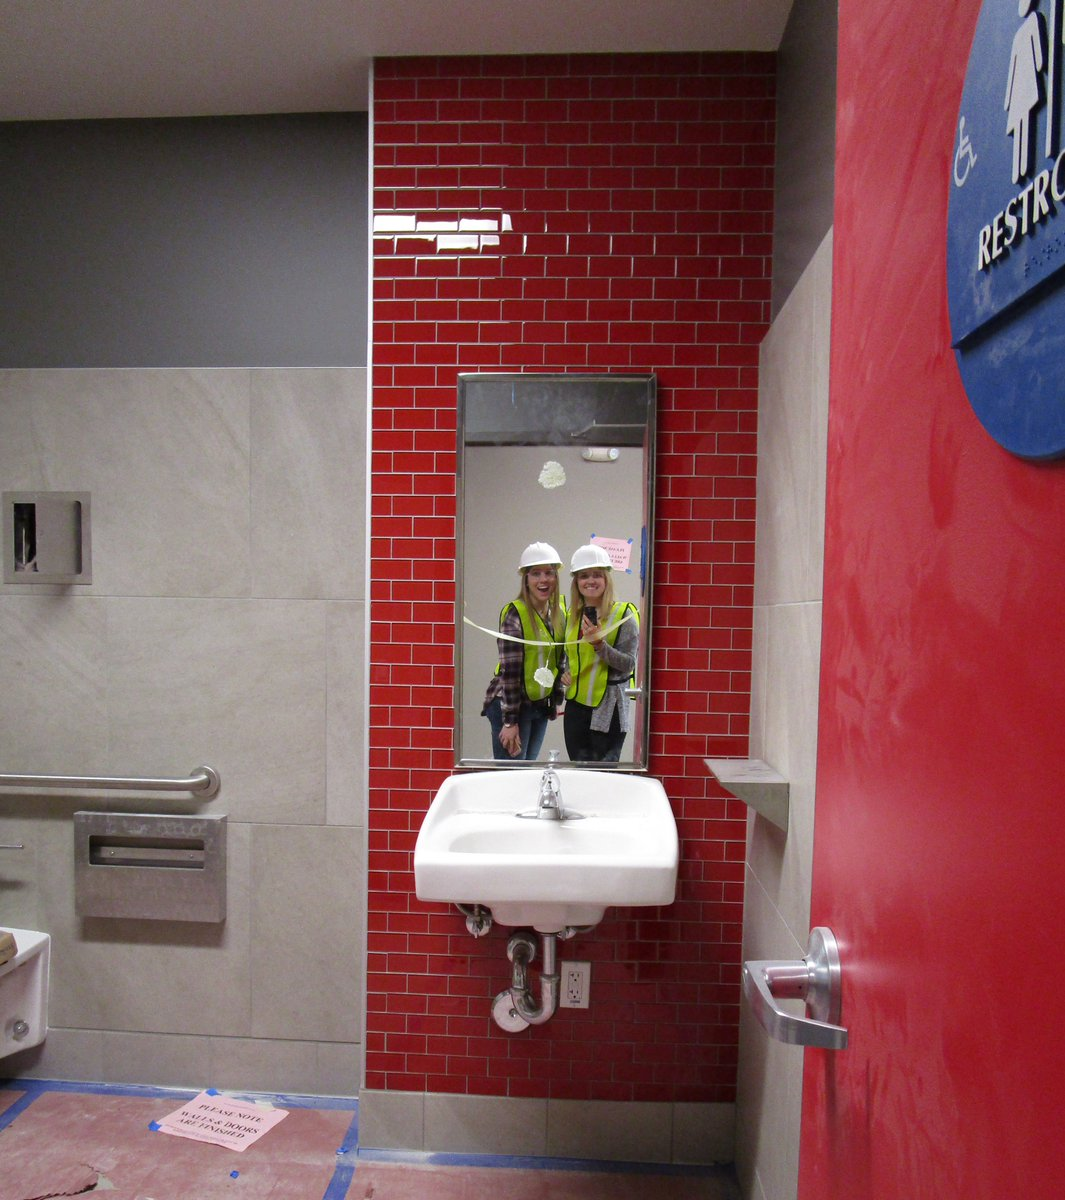 Mg2 On Twitter Our Irvine Target Team Uses A Bathroom Mirror For This Creative Siteselfie Mirrormirroronthewall Architecture Https T Co Zi43vllhgv Https T Co S3dilcd74h